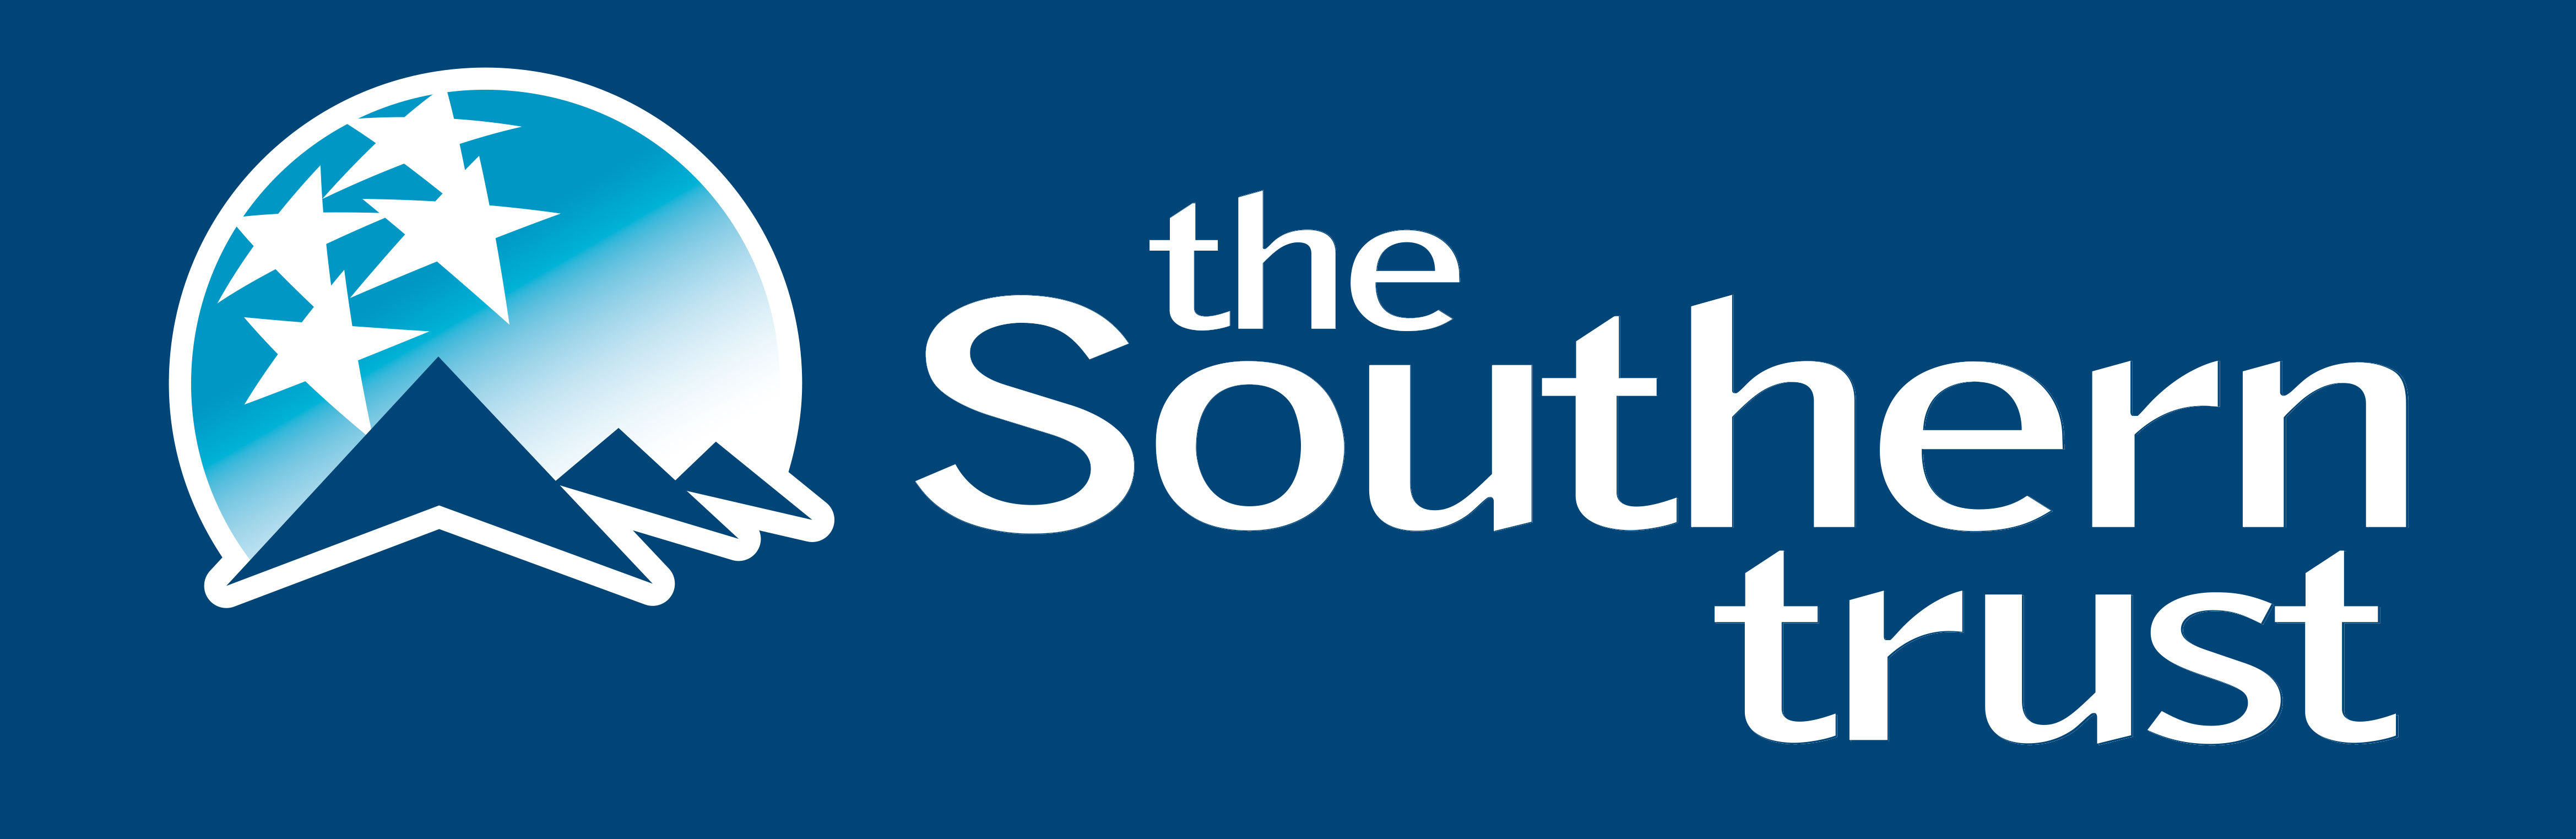 Sponsorship by Southern Trust